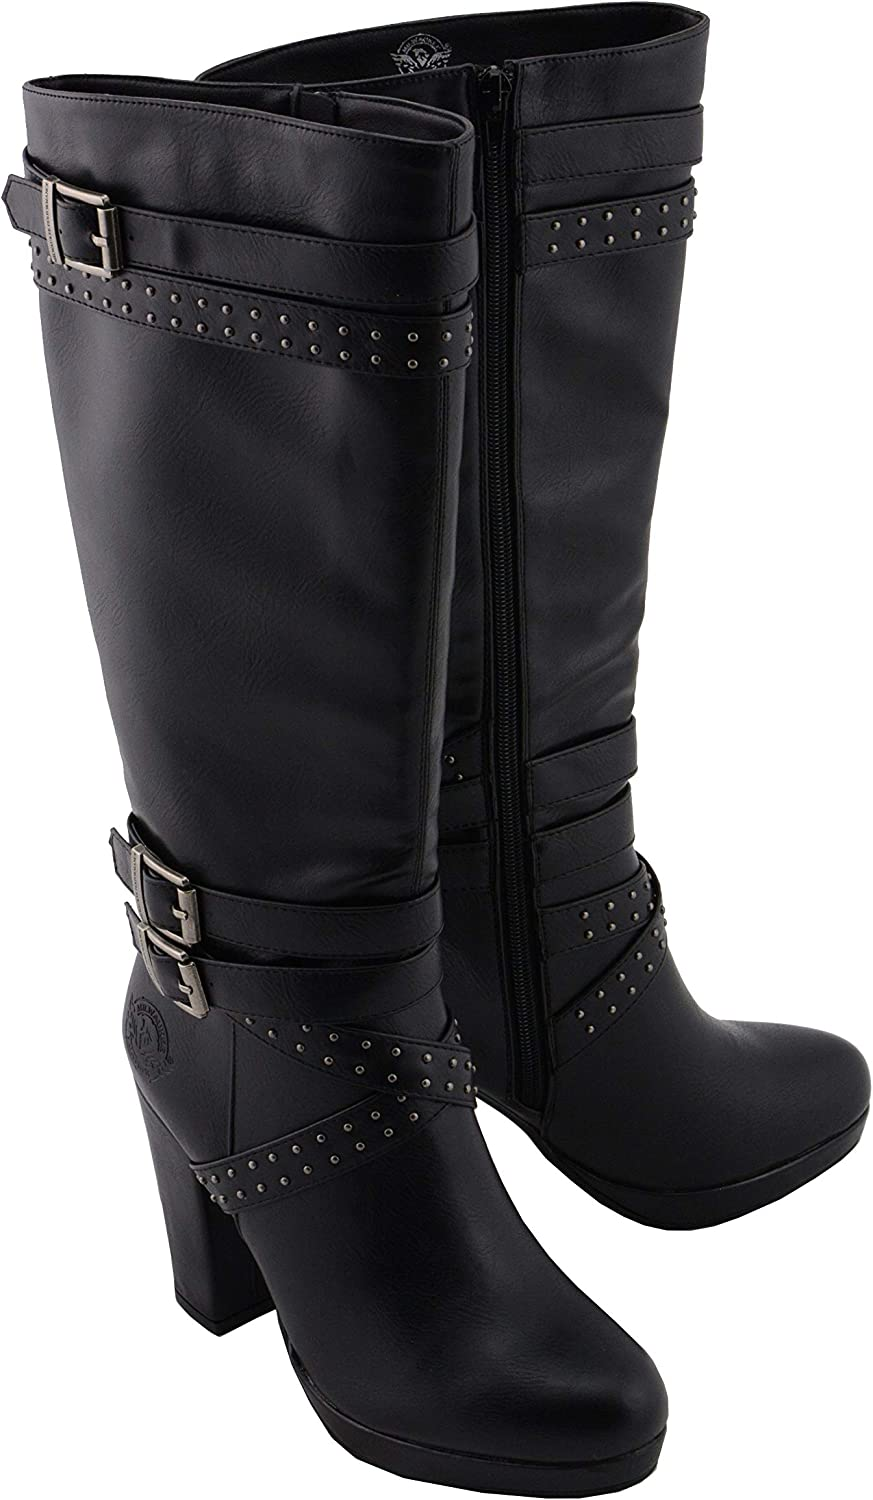 Studded Strap Boots with Platform Heel